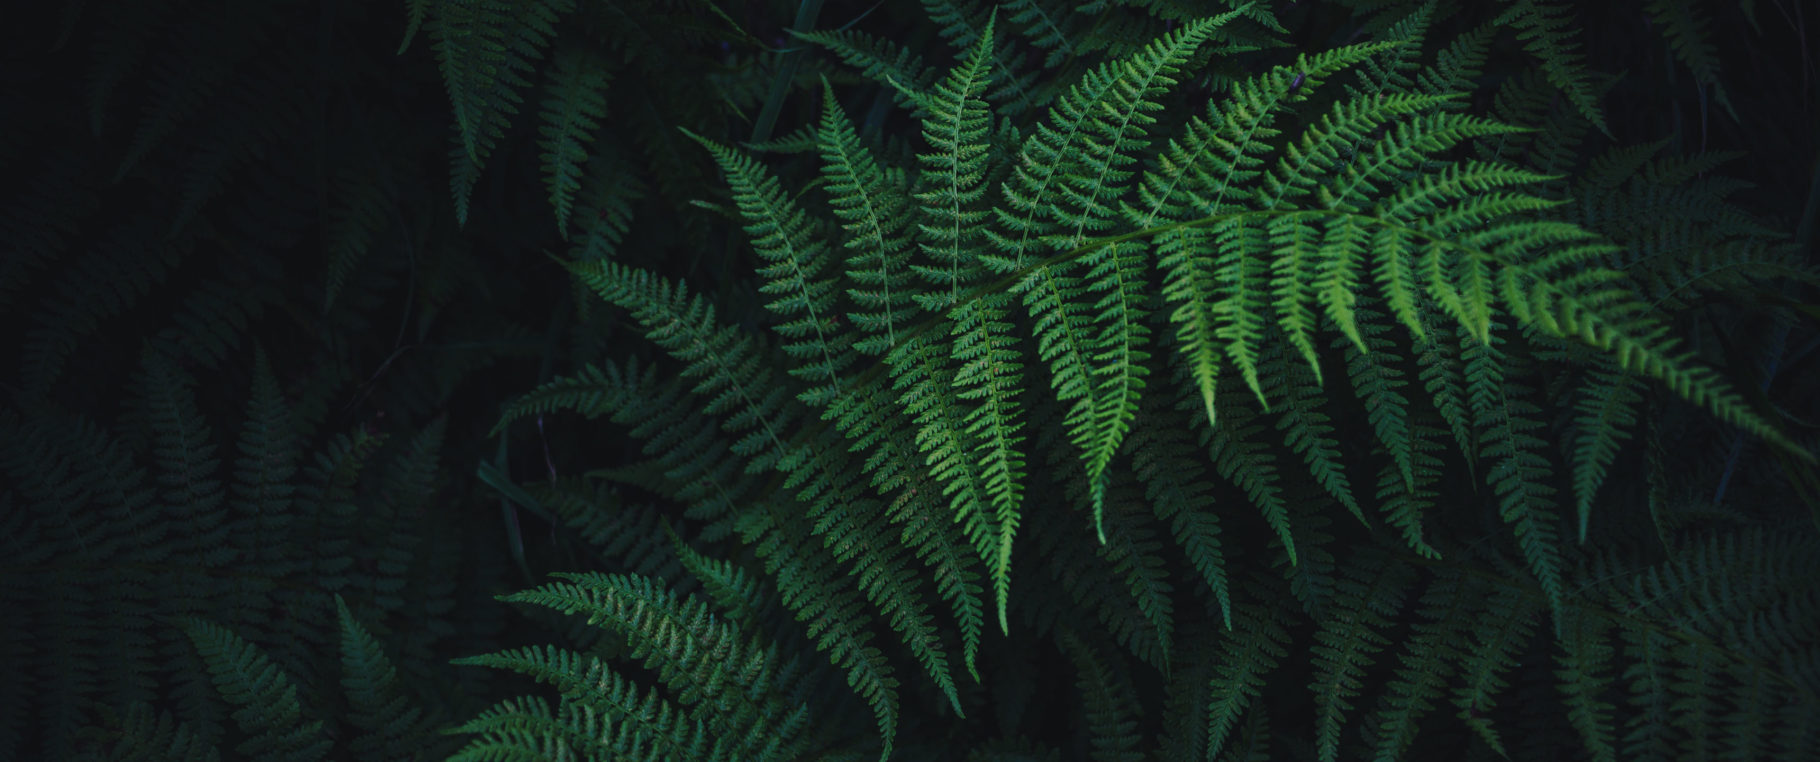 Lush Fern 3440 1440 Wallpaper 3440x1440 Wallpapers